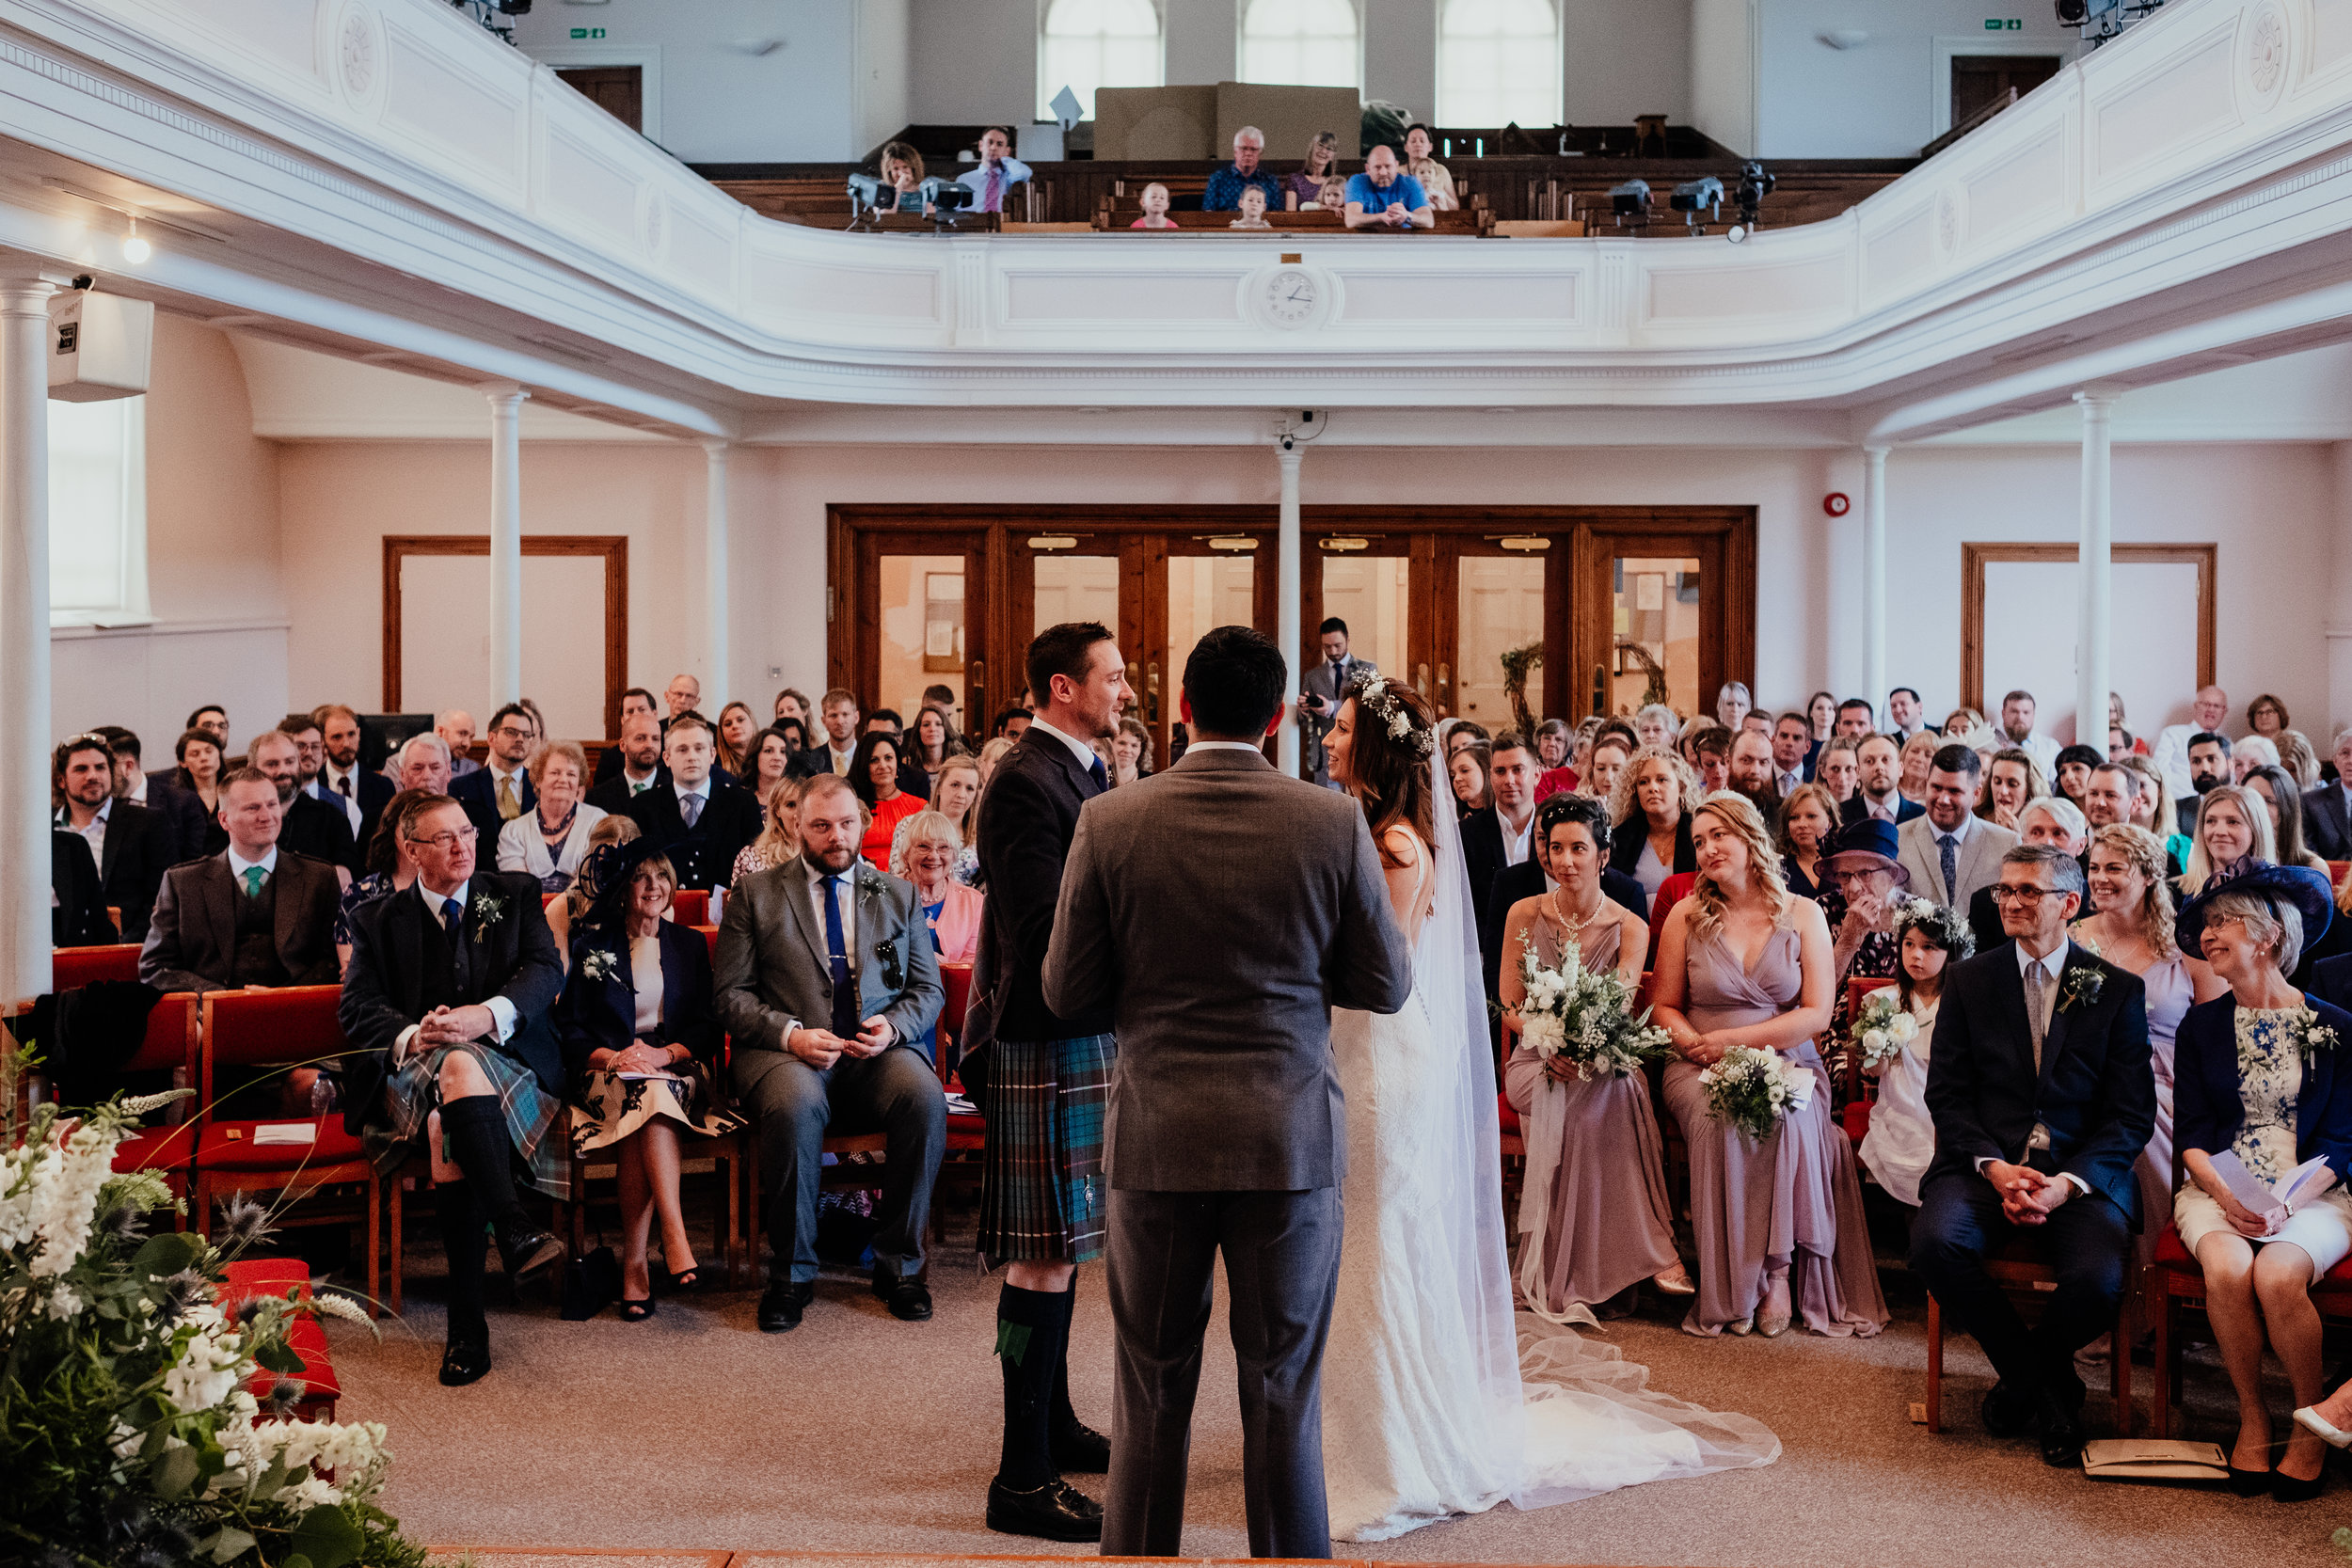 Bride and Groom exchange vows in front of friends and family at United reformed Church in Maldon Essex